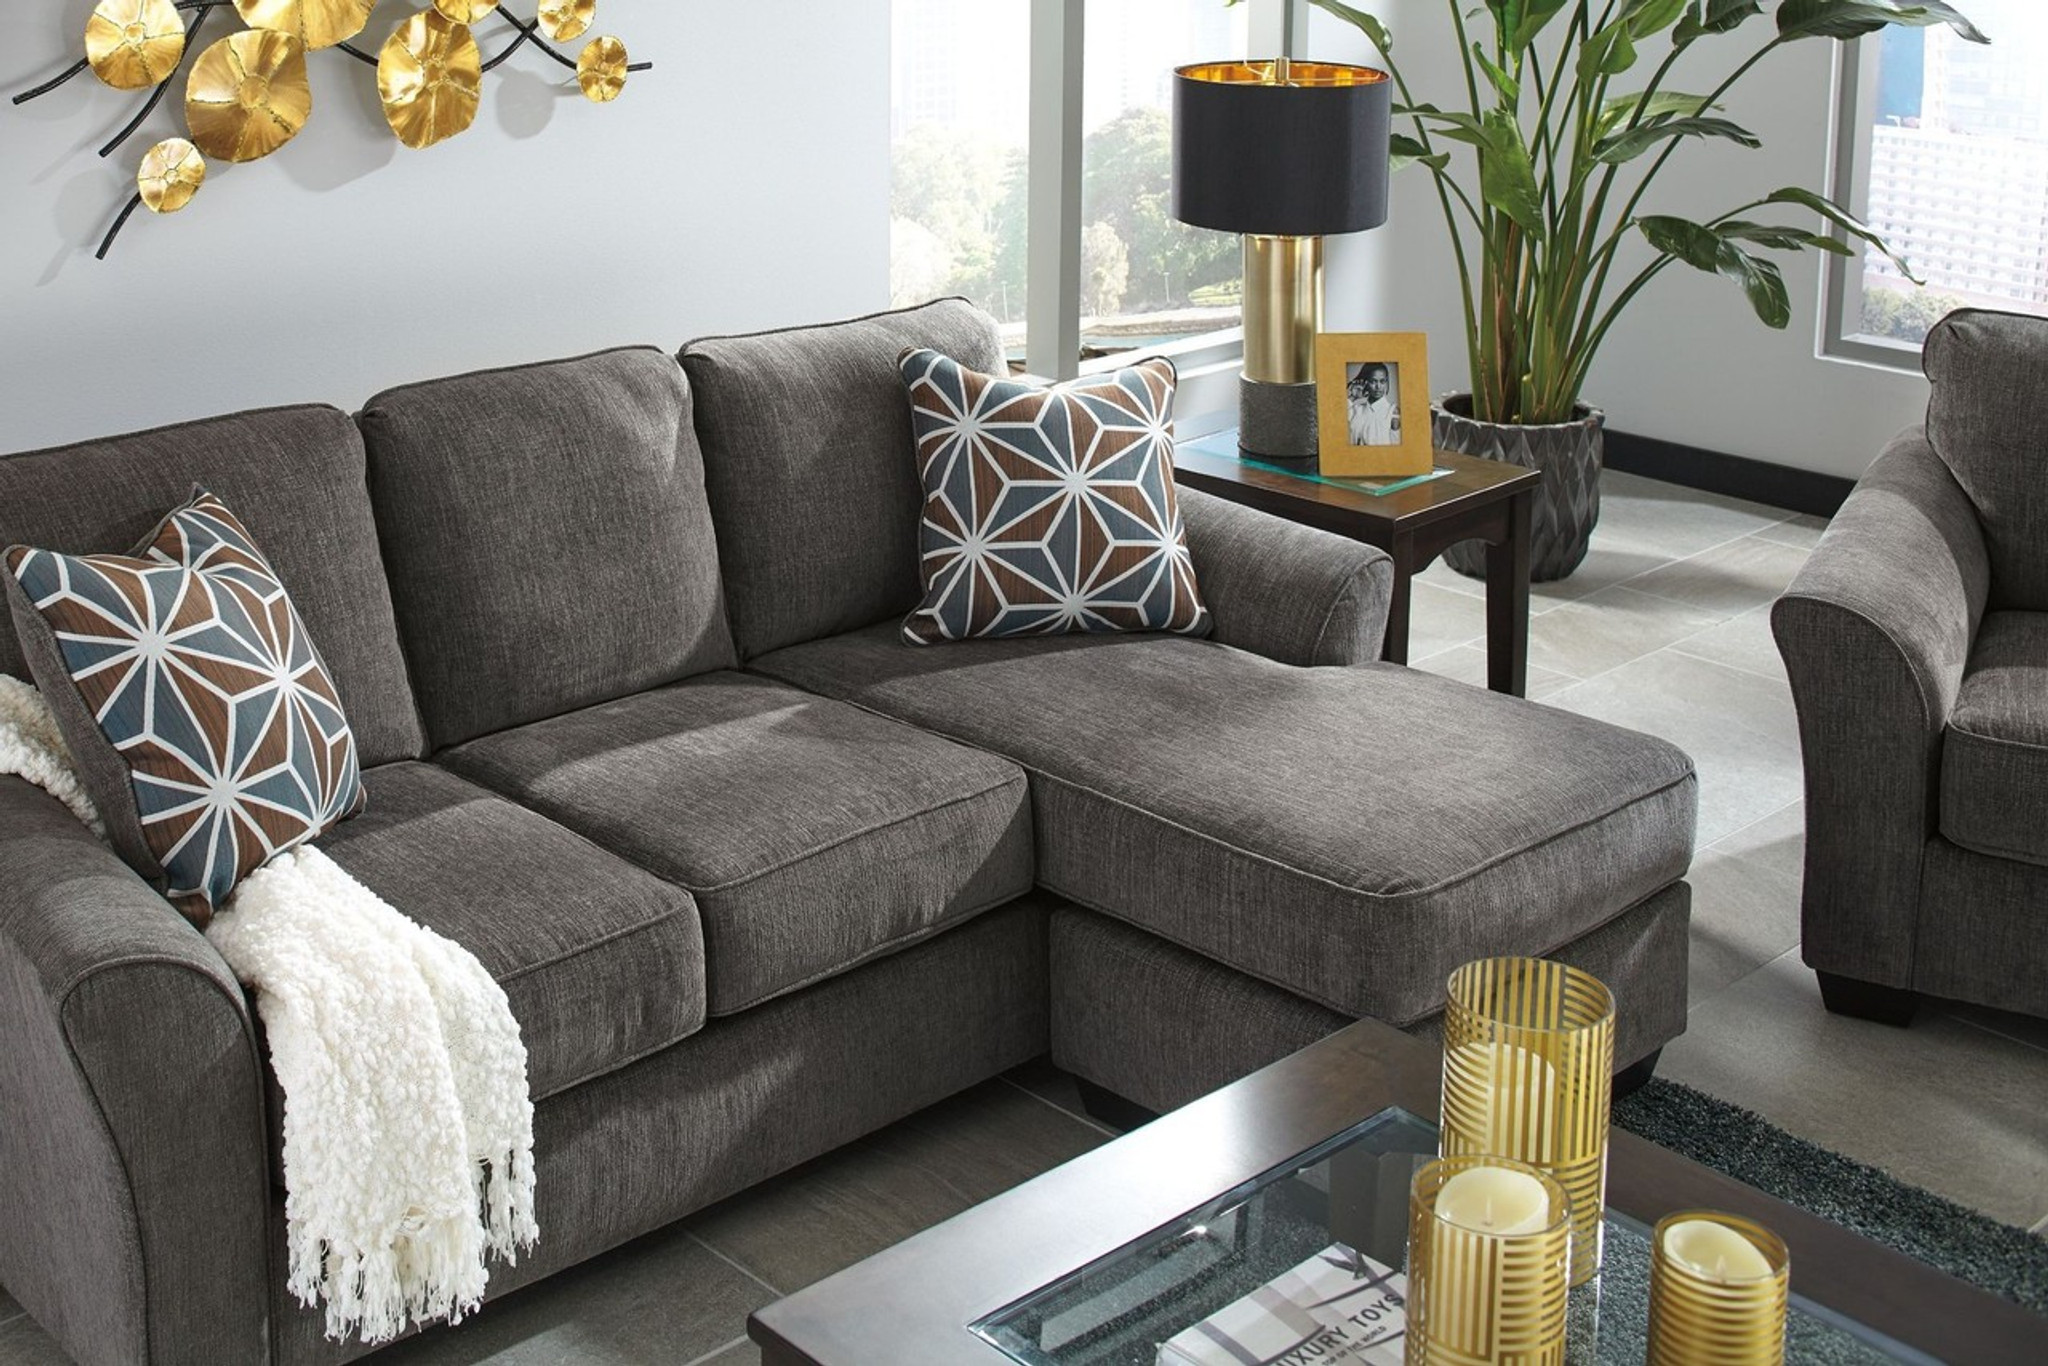 Awe Inspiring Brise Slate Collection Sofa Chaise Dailytribune Chair Design For Home Dailytribuneorg